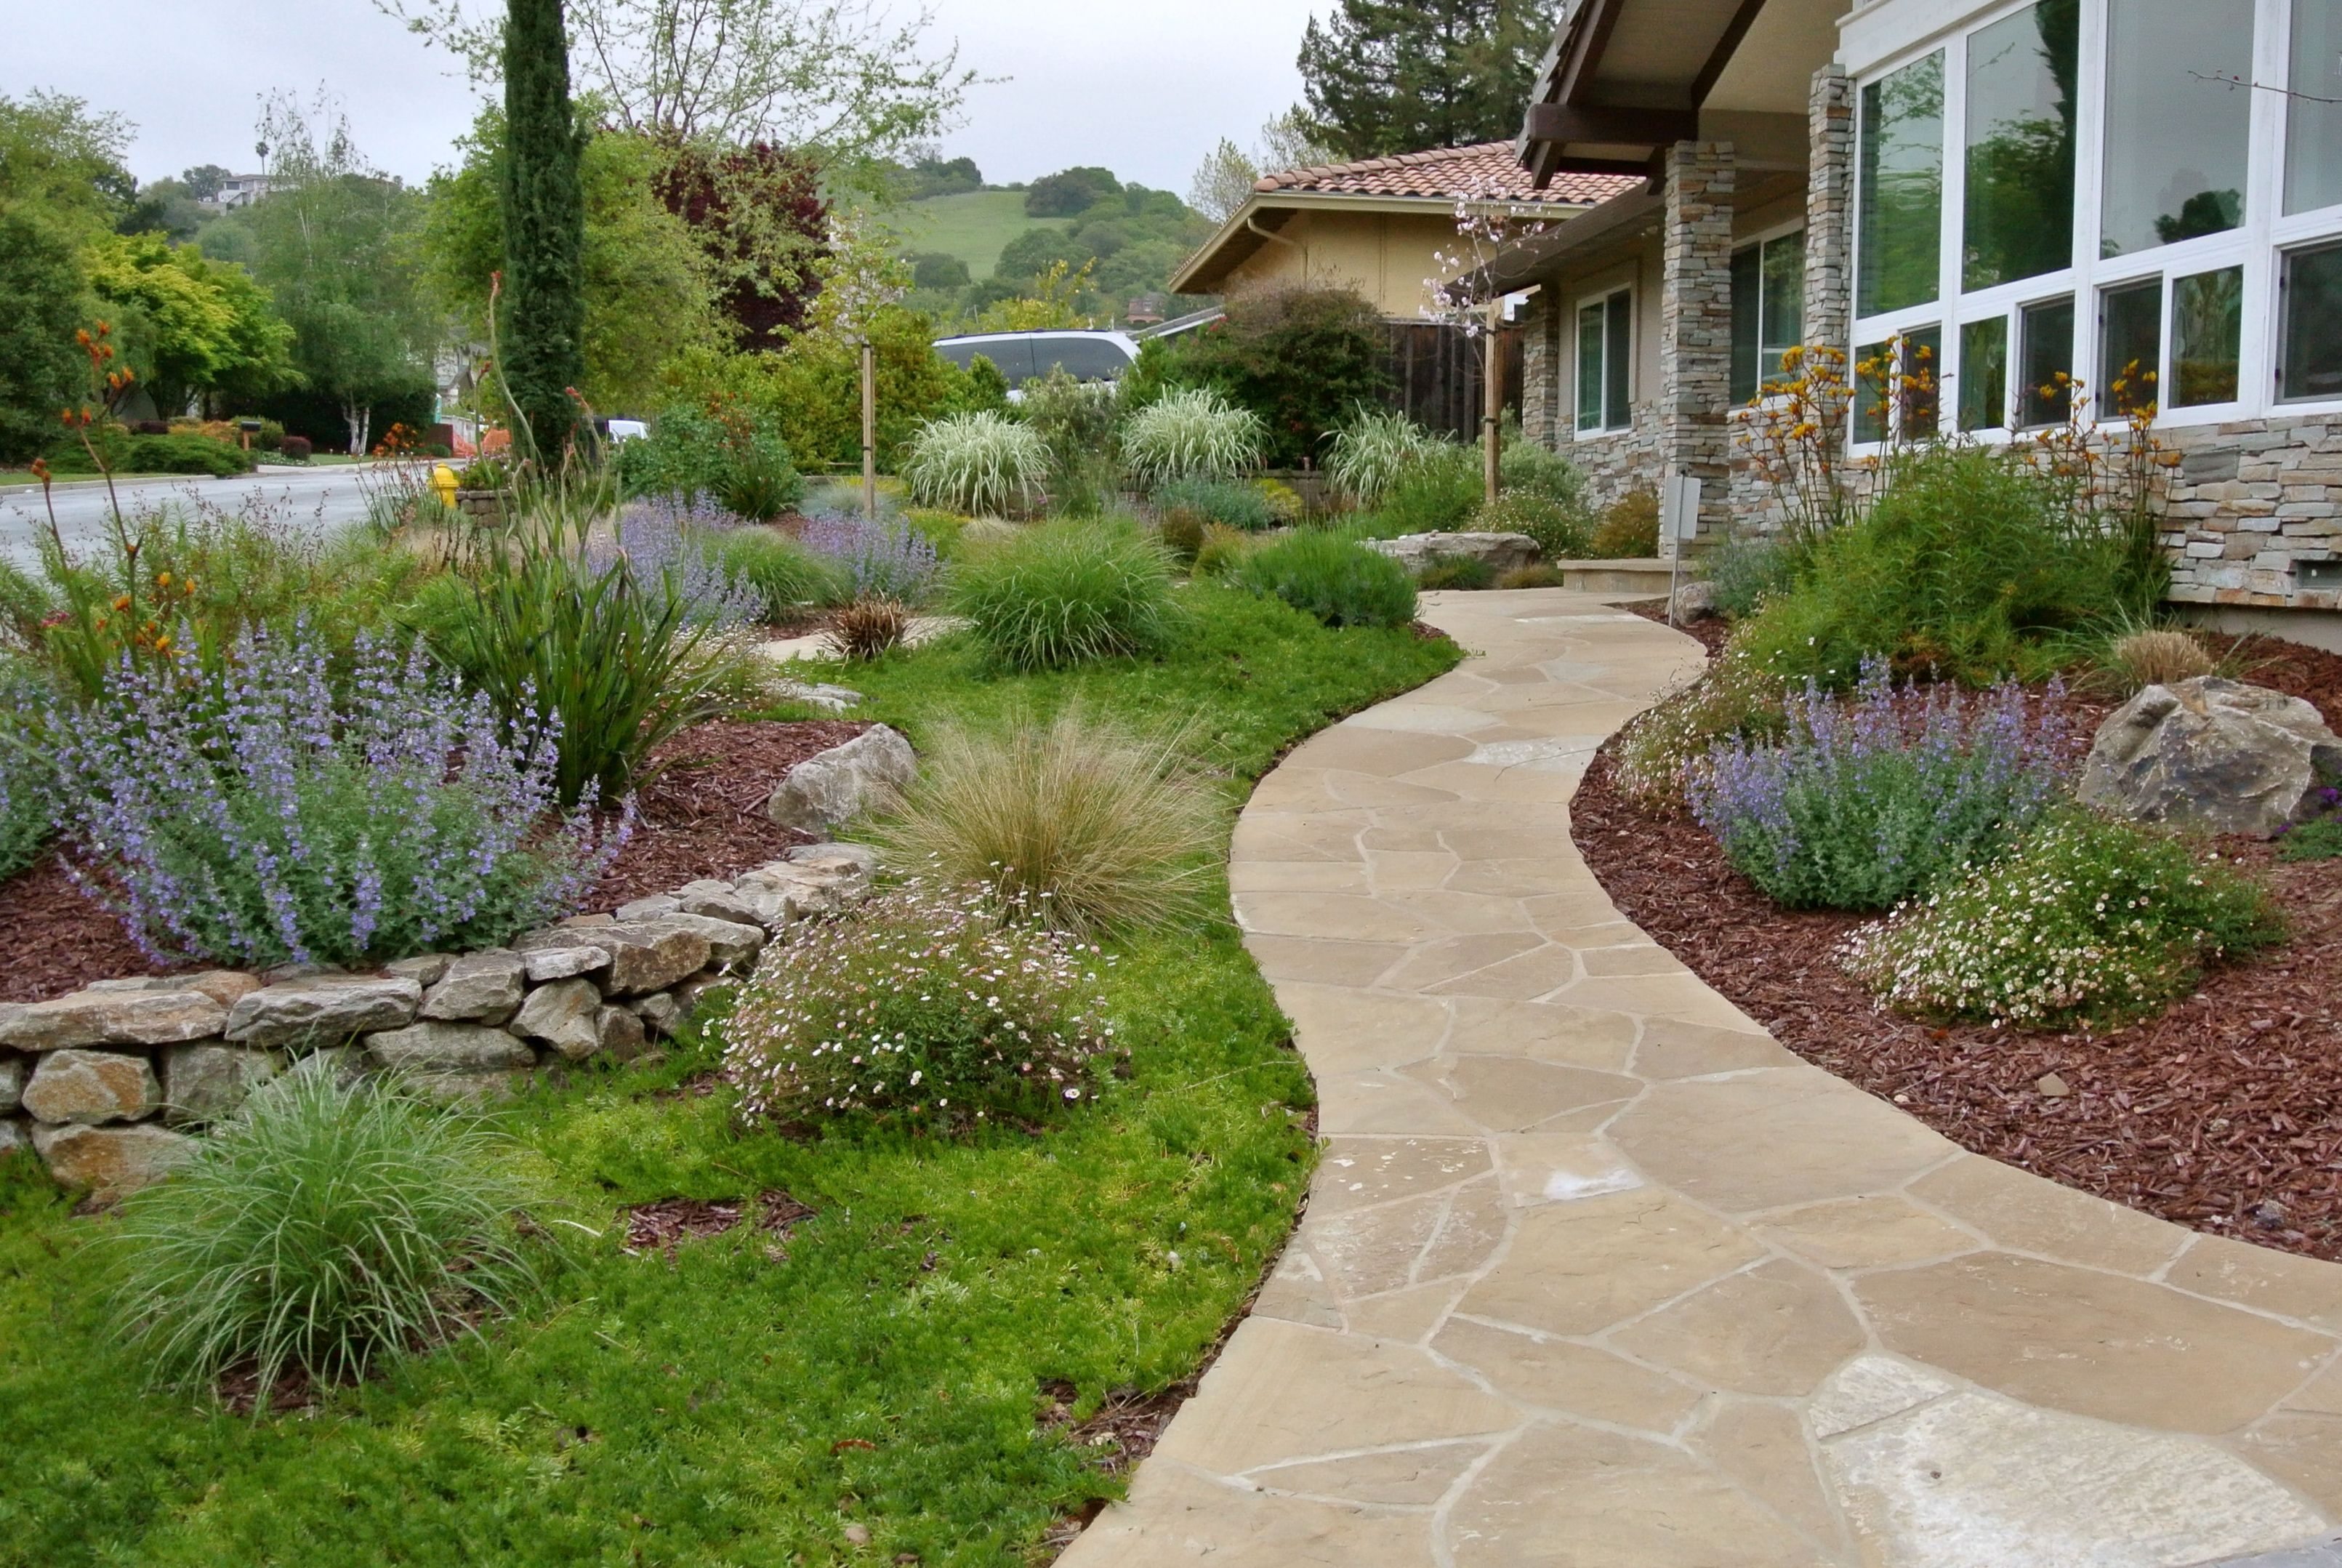 Easy Care Landscape Design By Confidence Landscaping, Inc